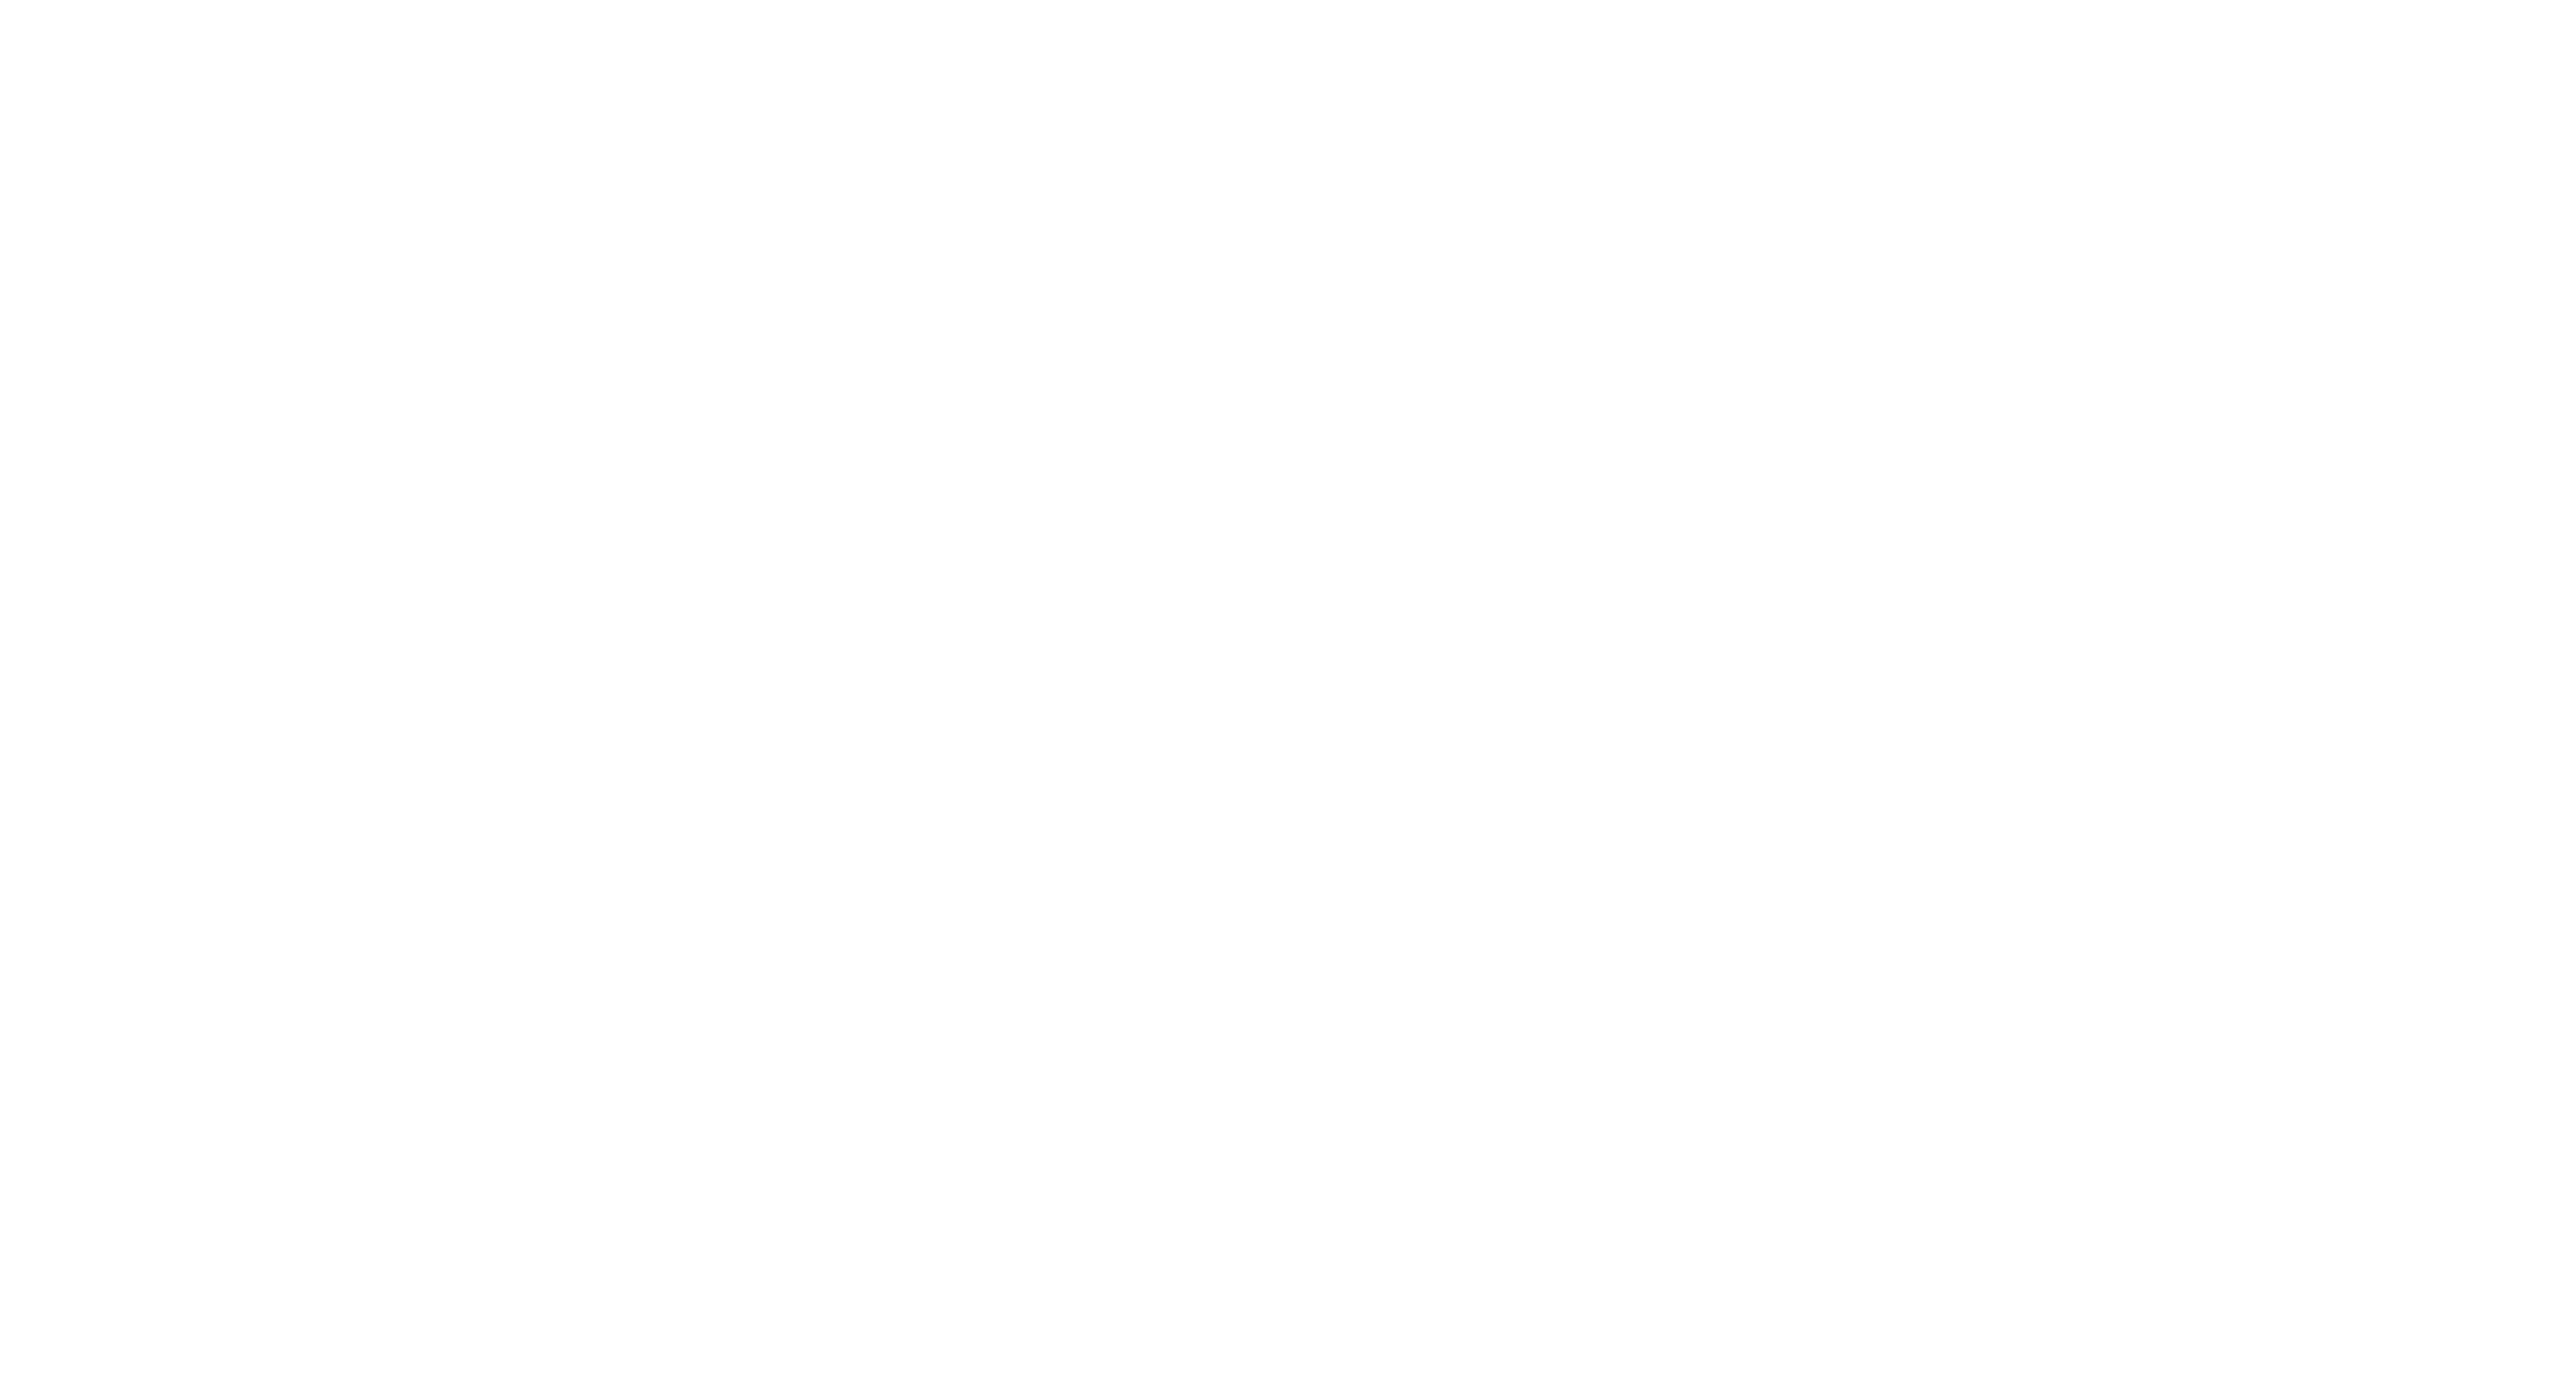 Natural History Museum of Jamaica